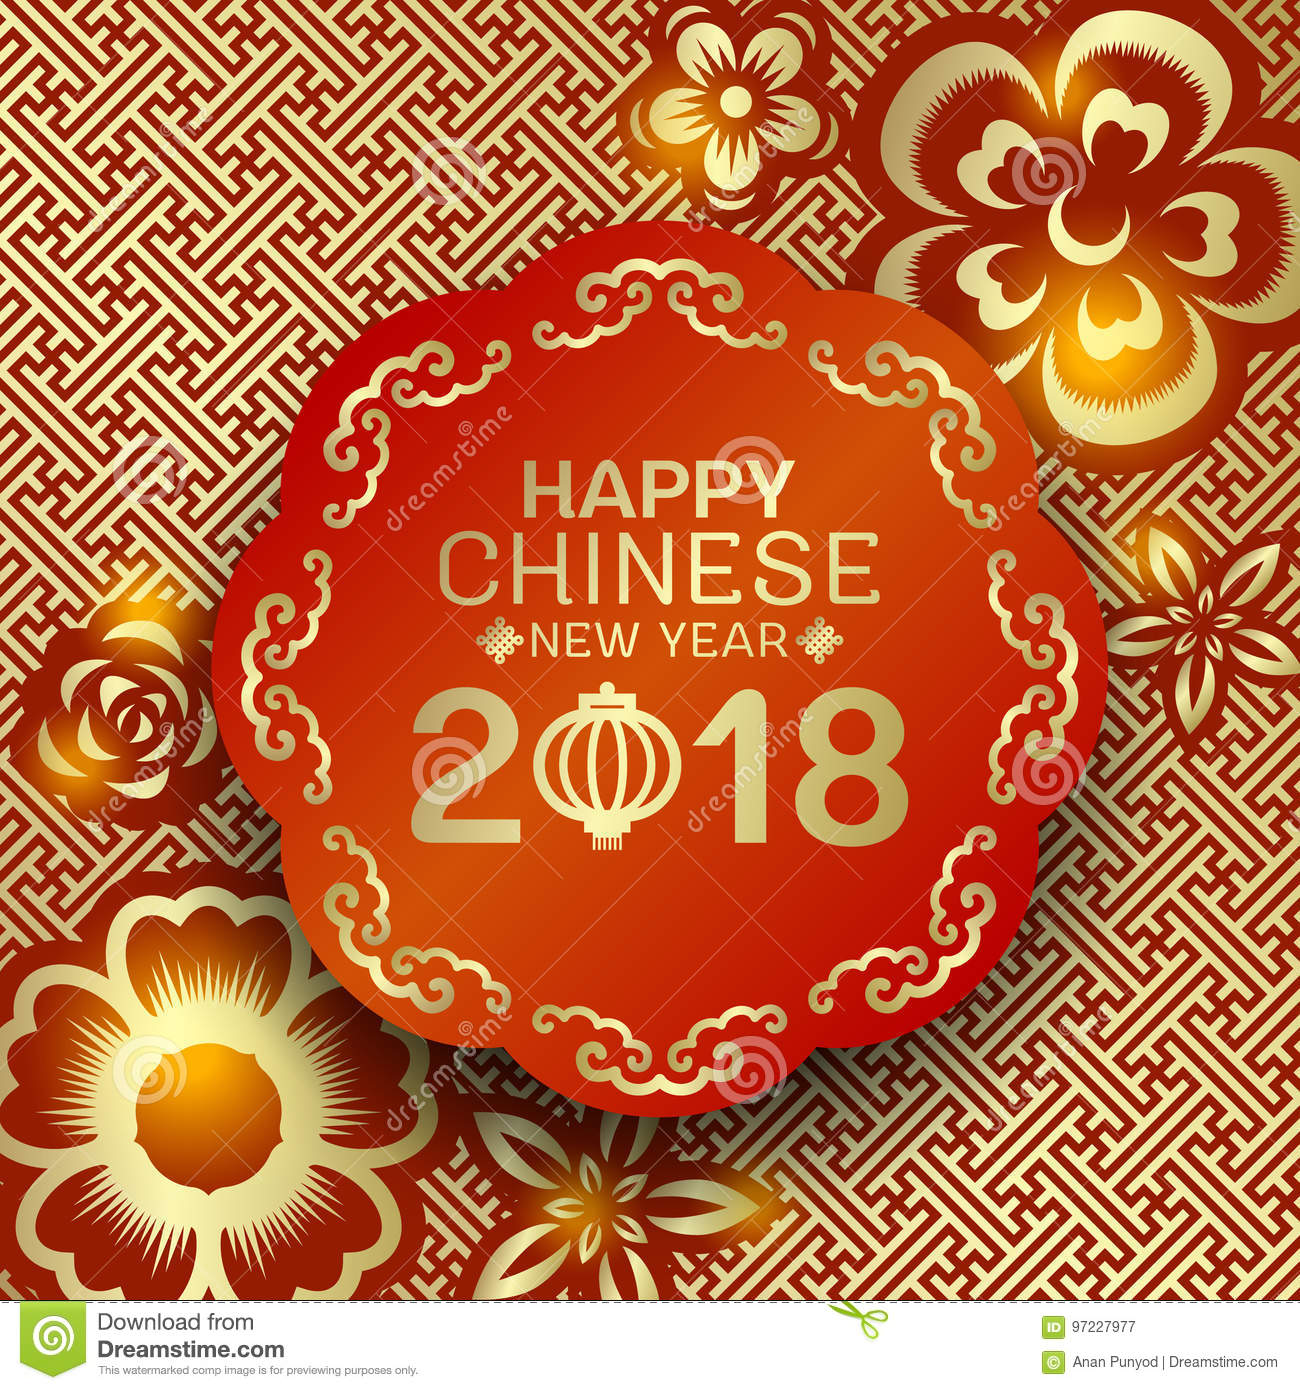 happy chinese new year 2018 text on red circle banner and bronze gold flower china pattern